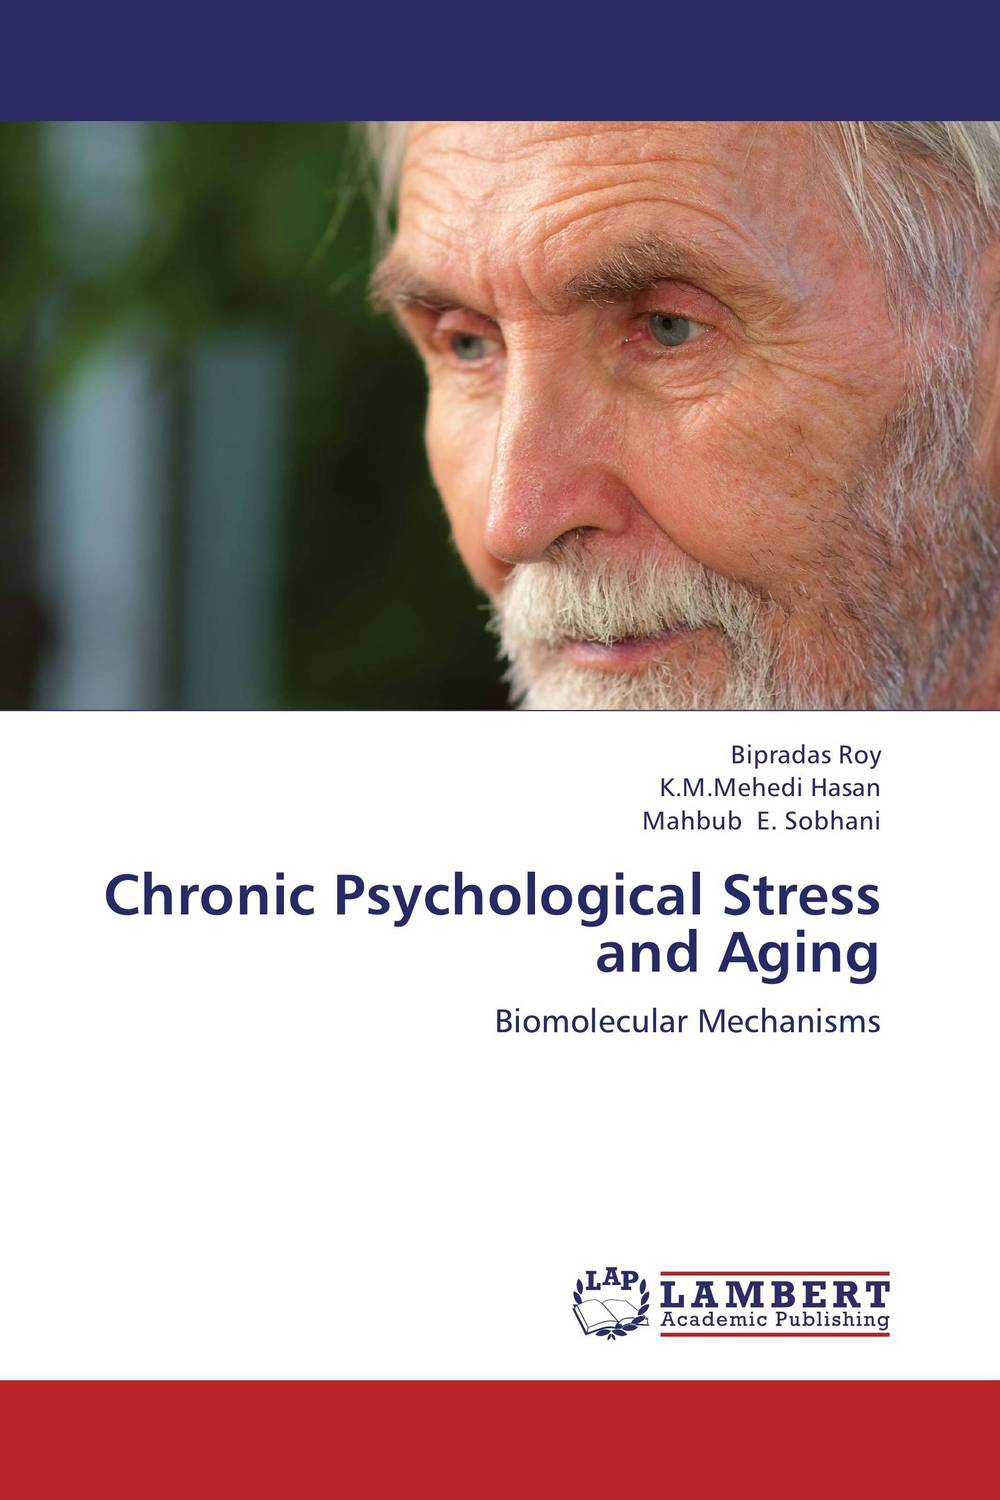 Chronic Psychological Stress and Aging the role of dna damage and repair in cell aging 4